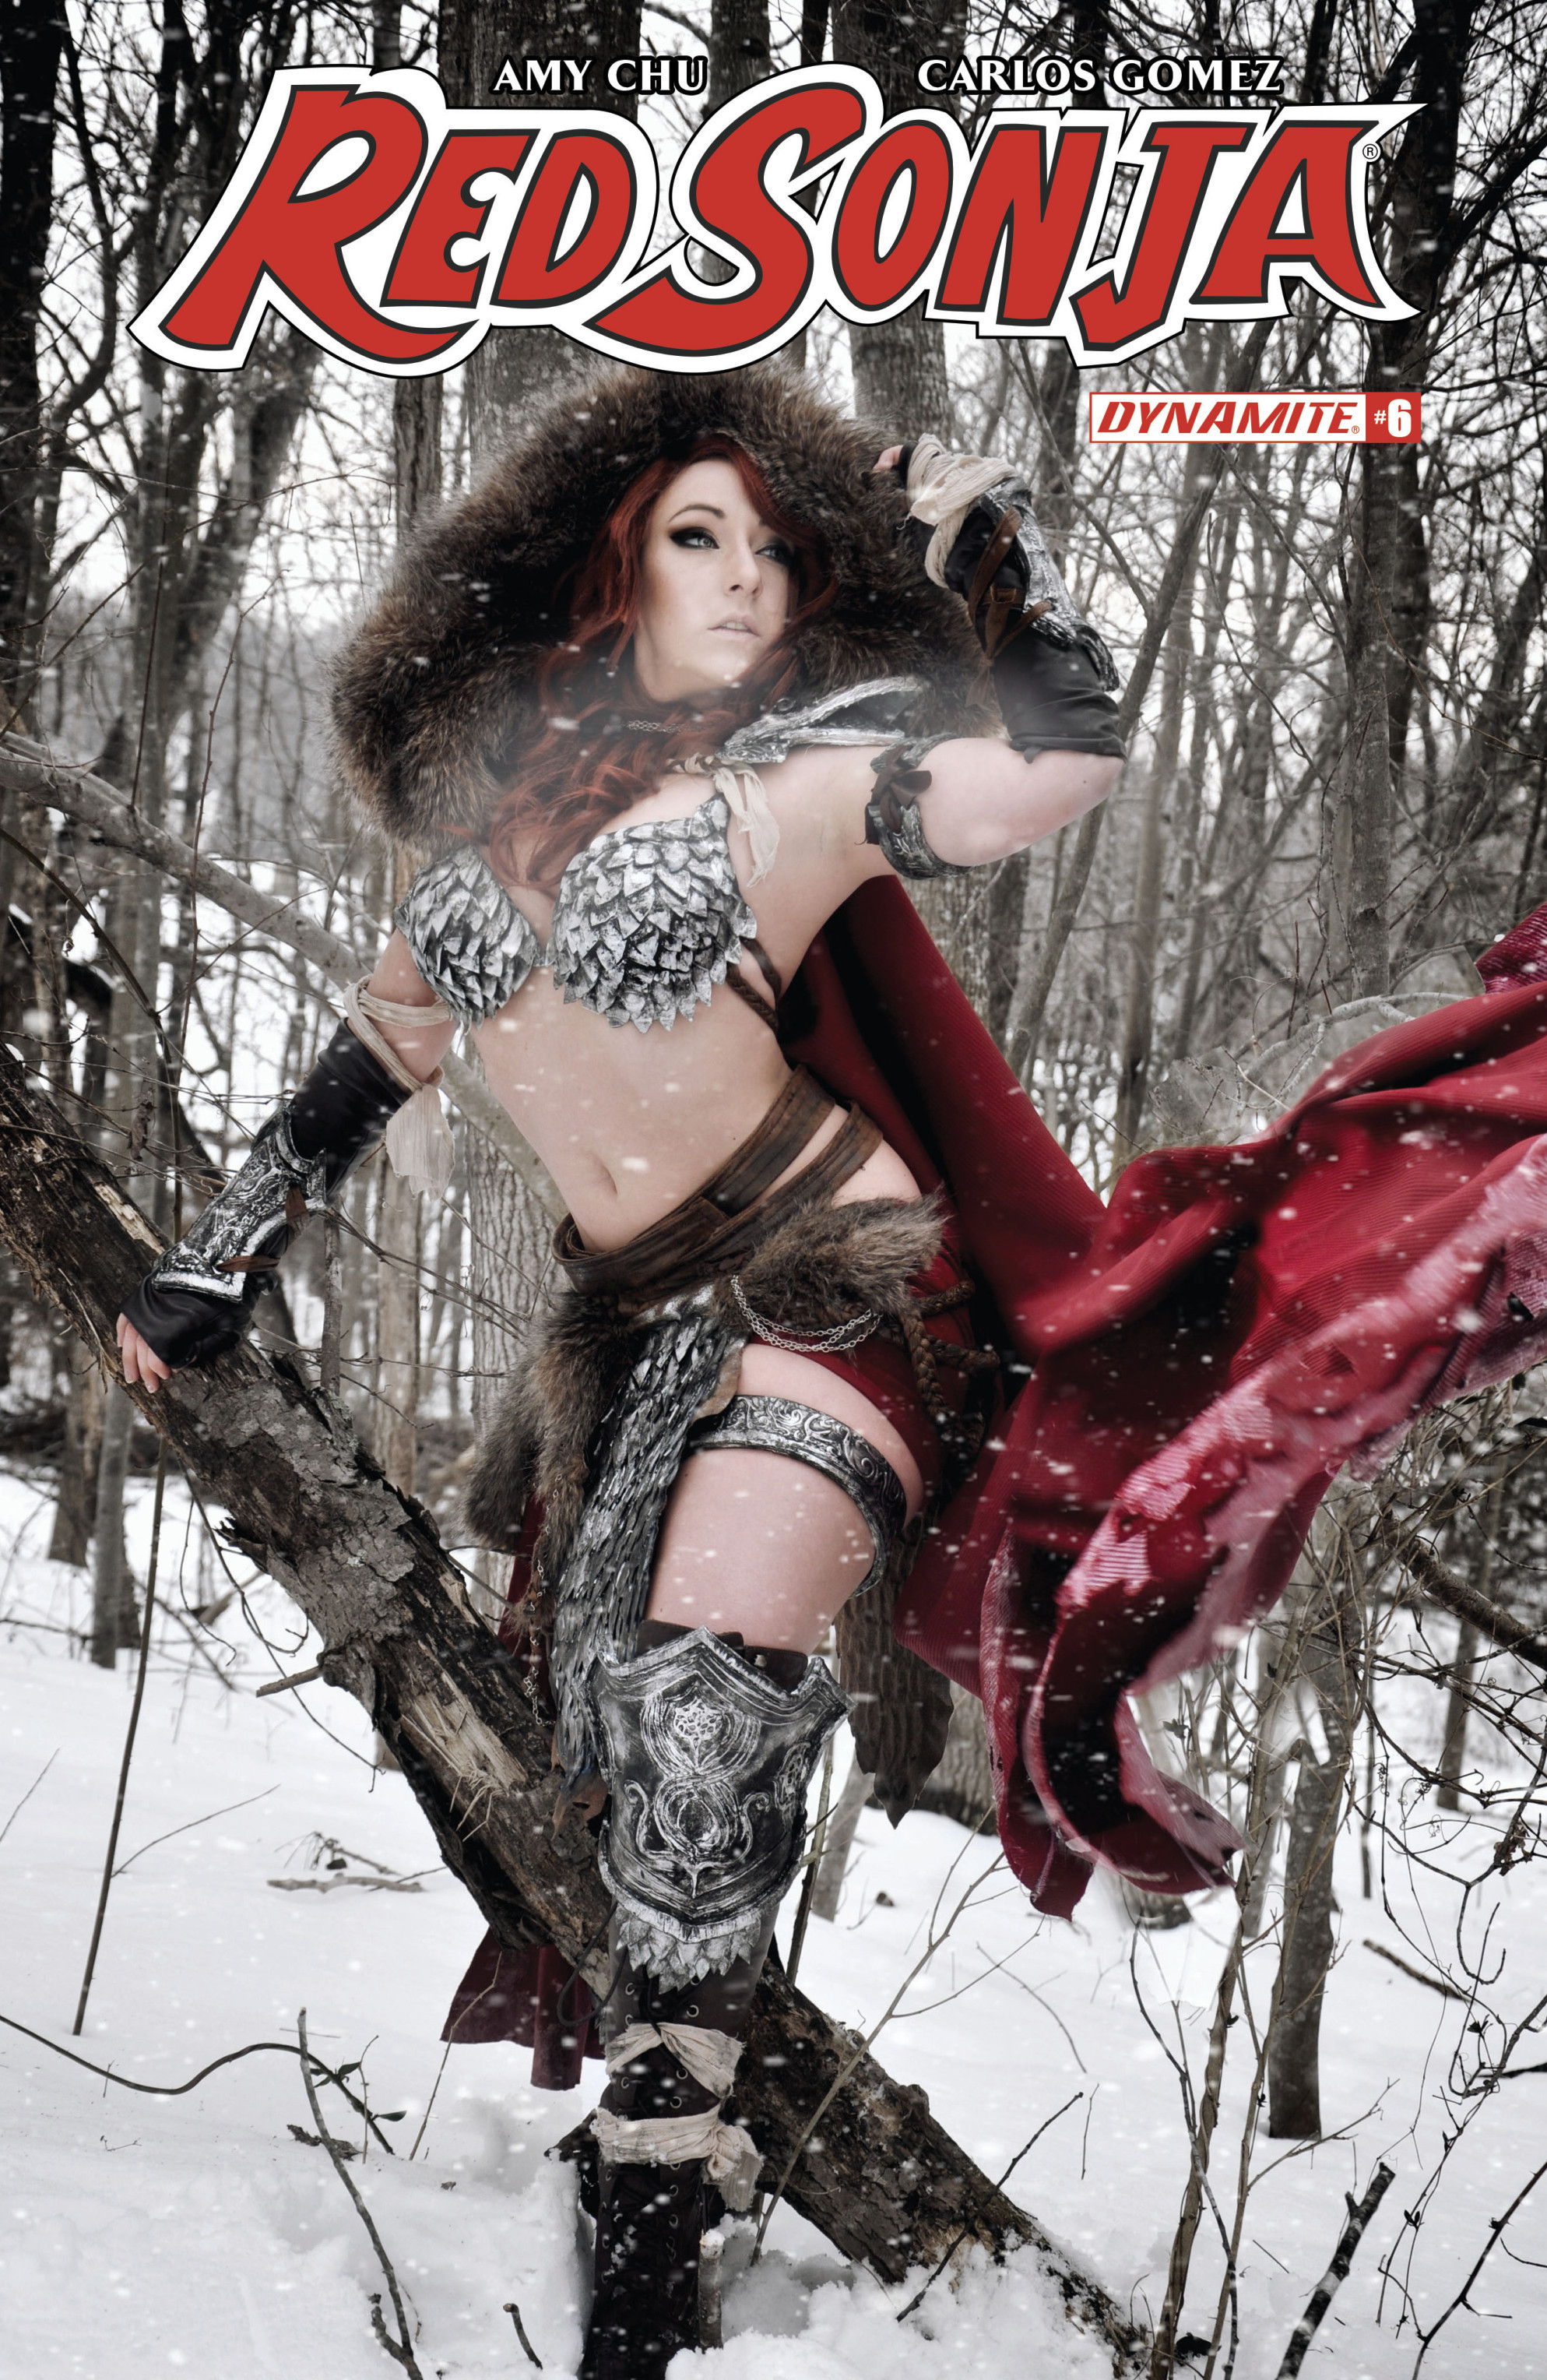 Read online Red Sonja Vol. 4 comic -  Issue #6 - 4